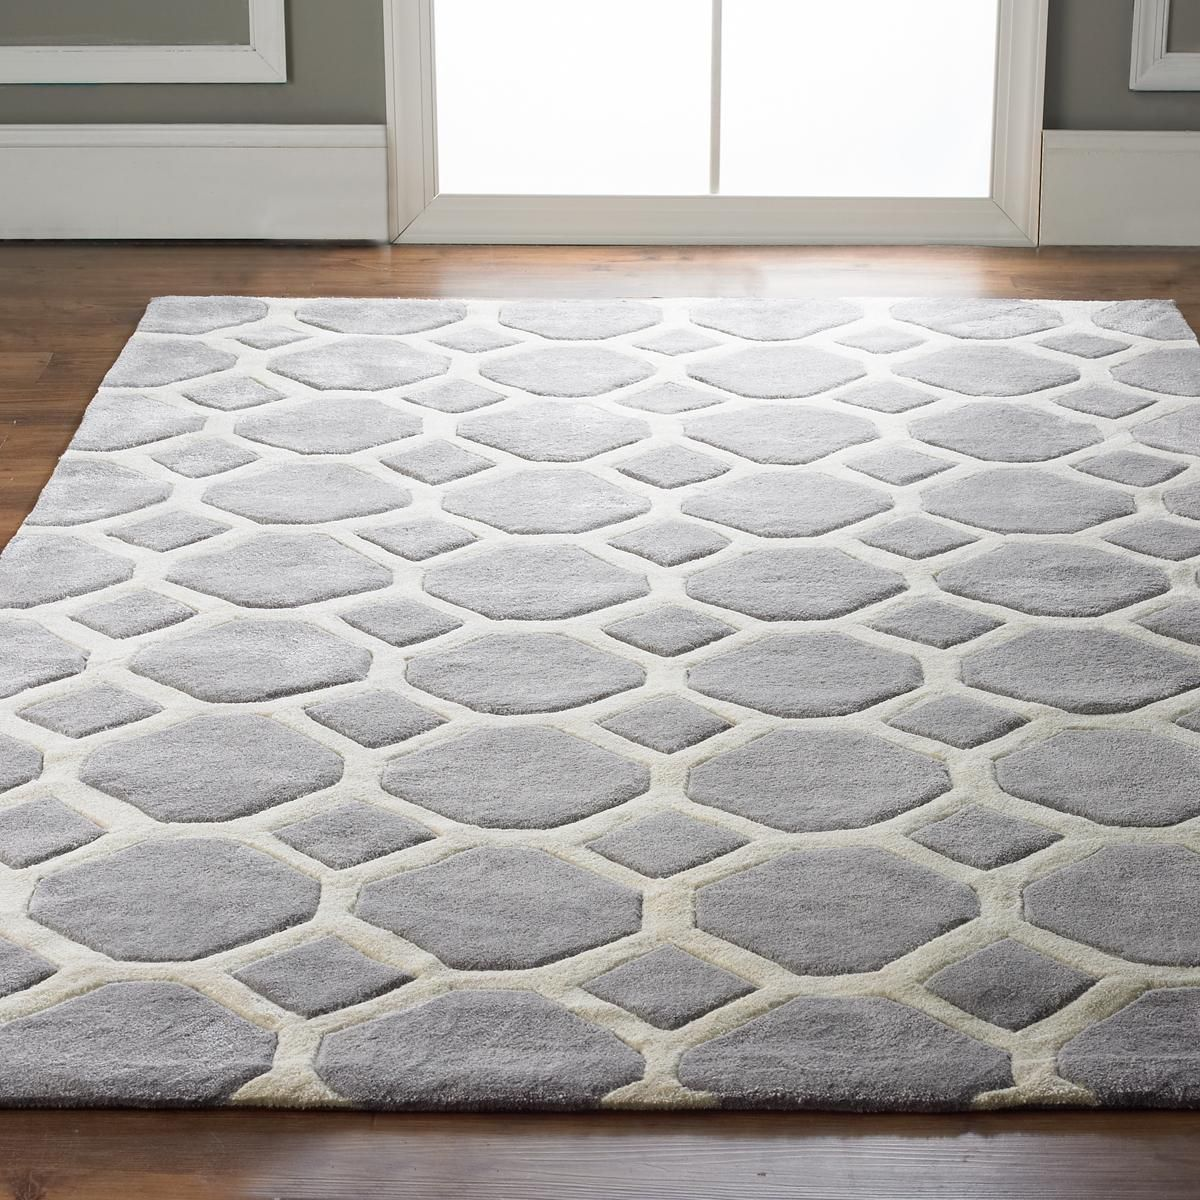 Honeycomb Carved Soft Rug Soft Rug Grey And White Rug Rugs